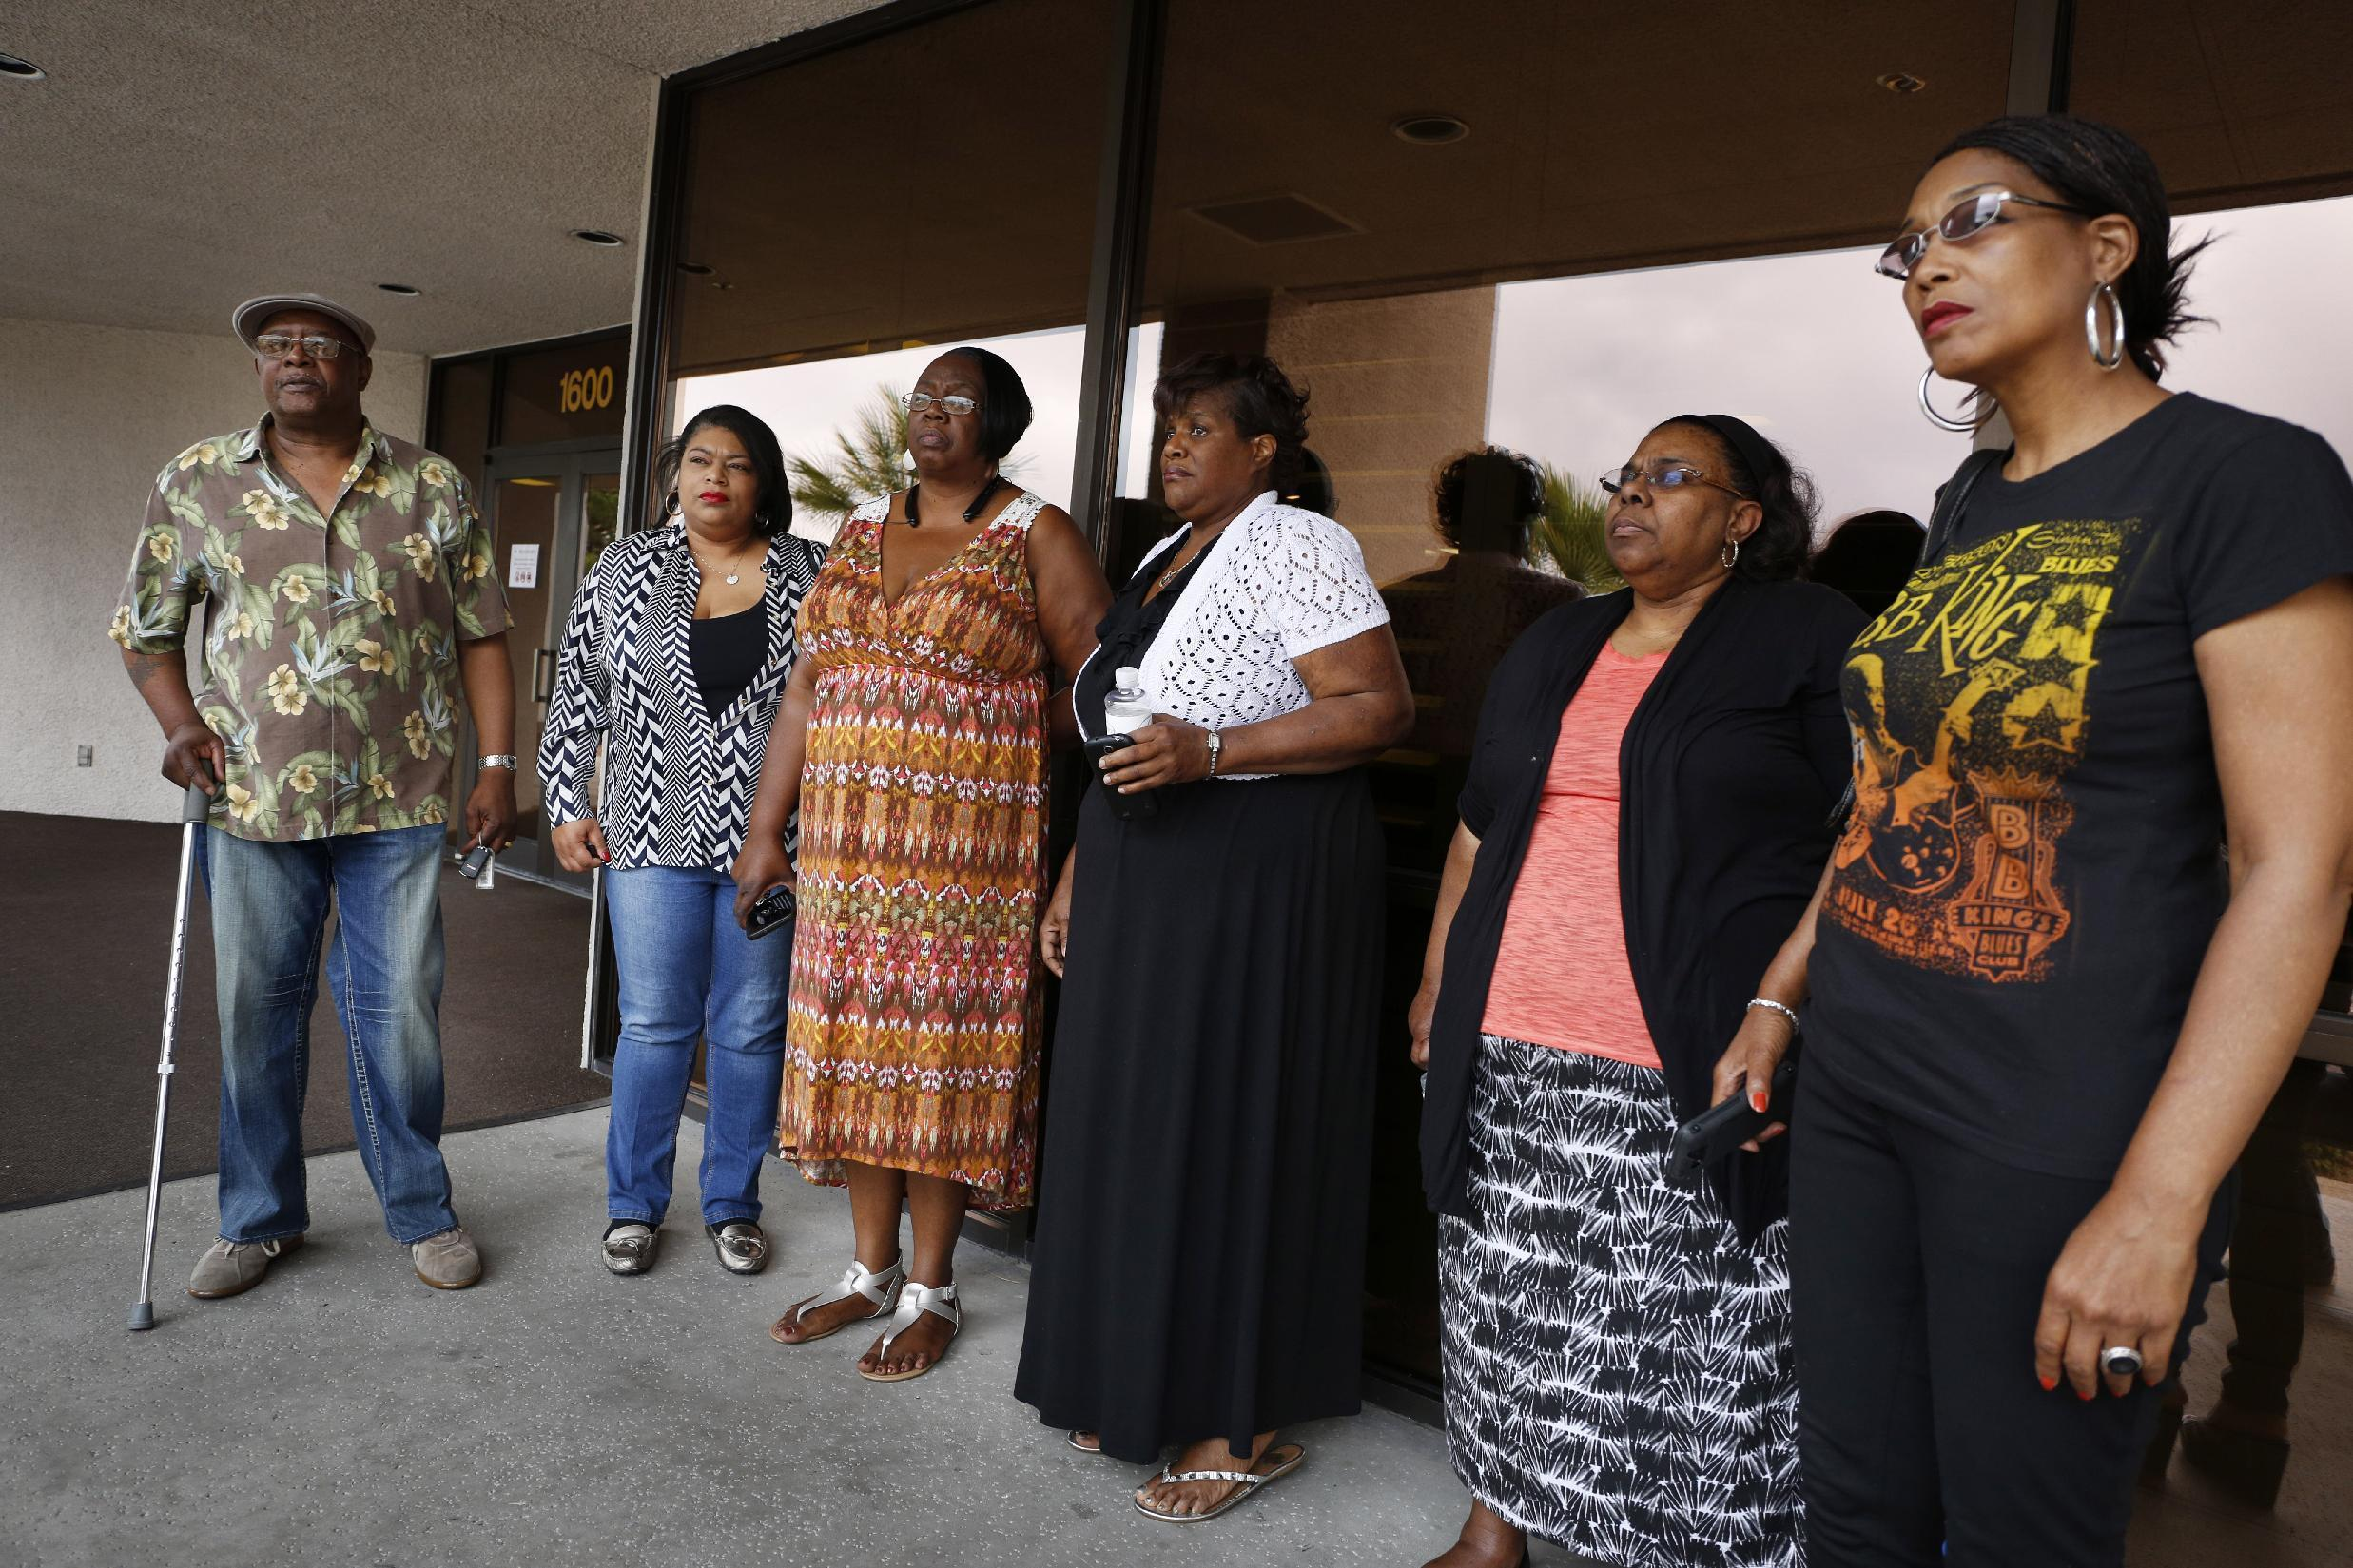 Long lines likely for Las Vegas public viewing of B.B. King